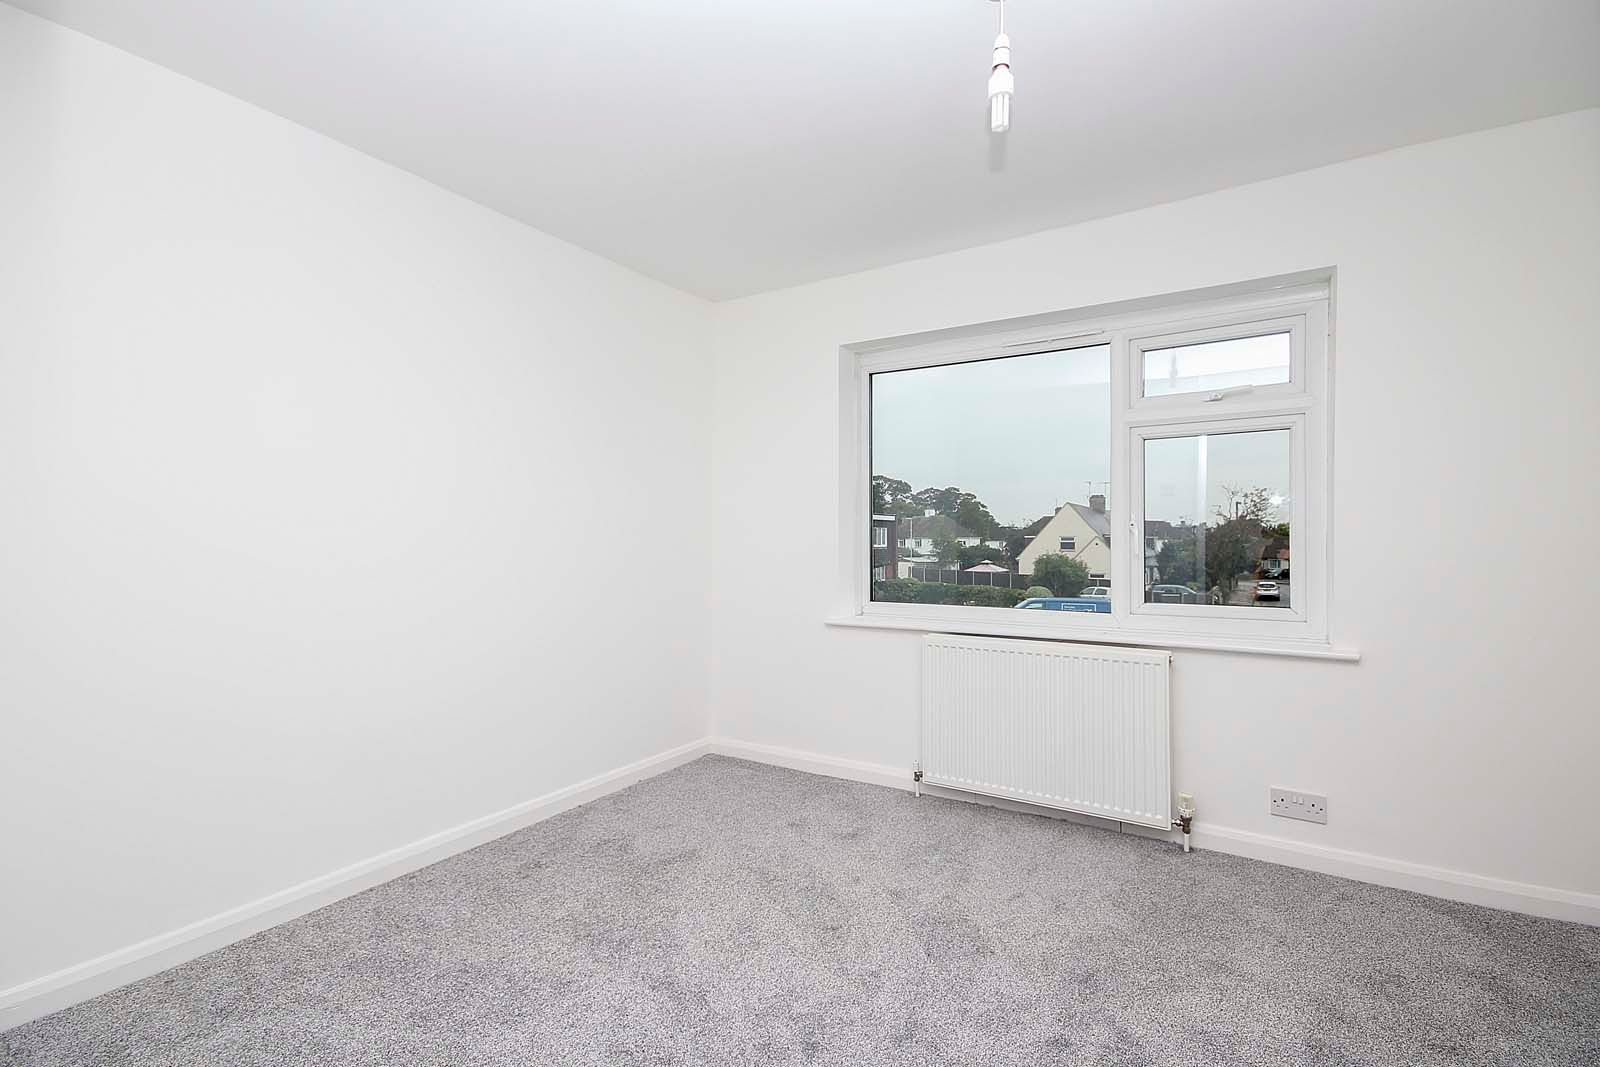 2 bed house for sale in Church Way COMP Jan 2019  - Property Image 8